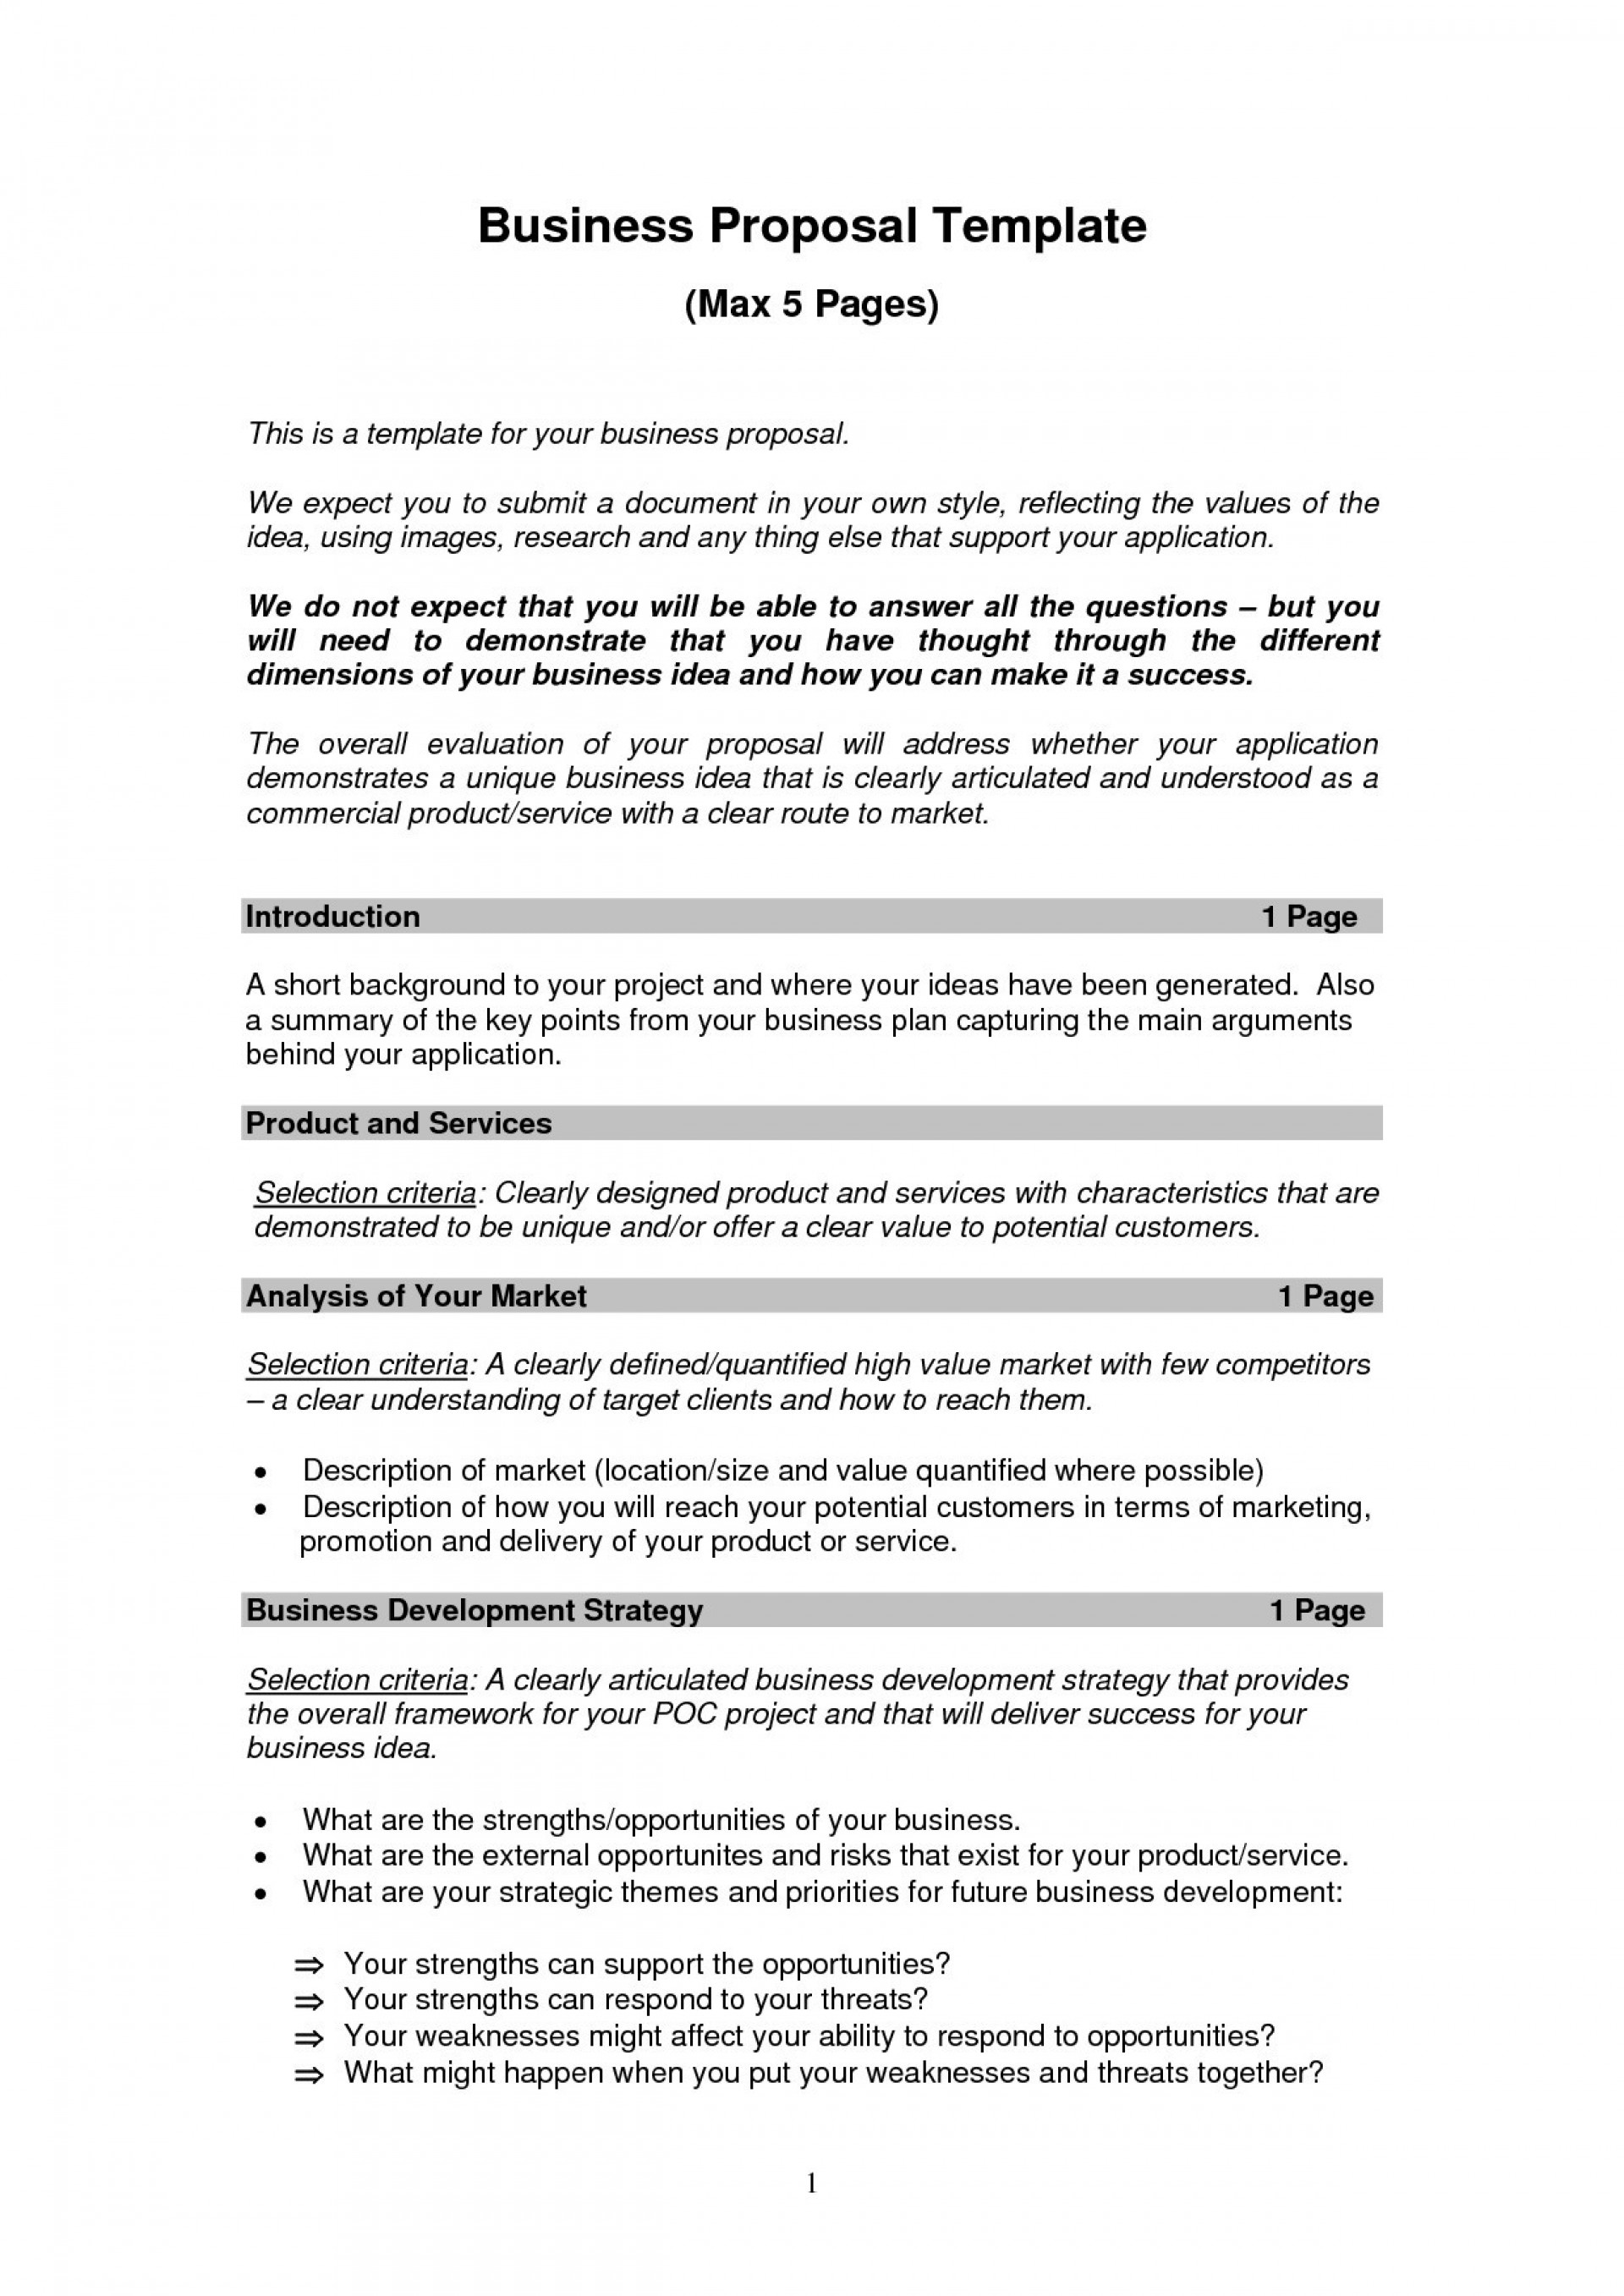 014 Argumentative Essay Transitions Elegant How To Write Plan For An Valid Sample Of Stupendous Transition Phrases 1920